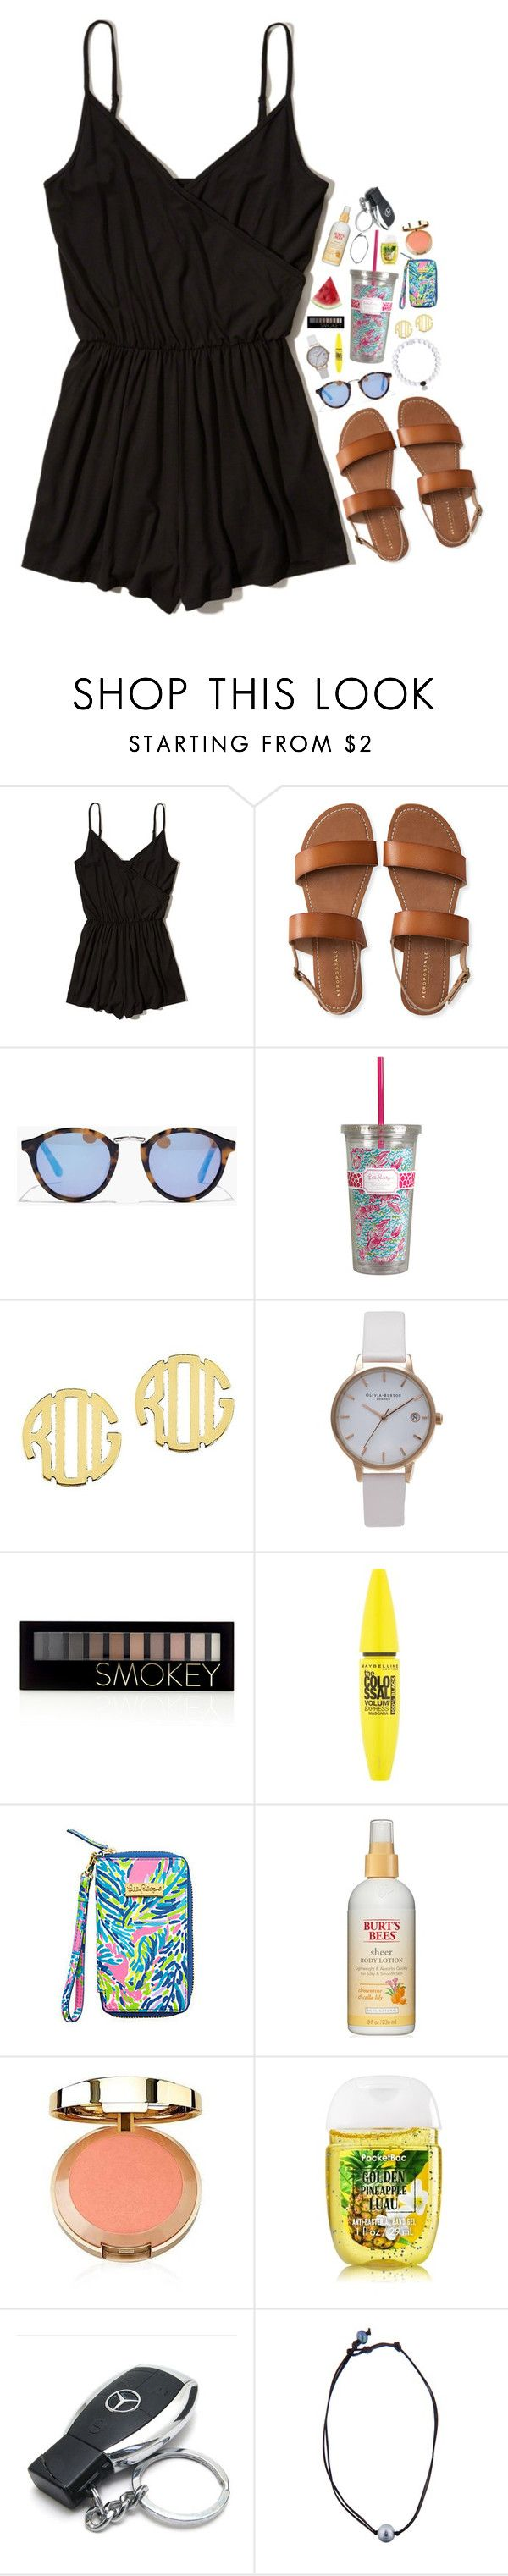 """happy friday!"" by theblonde07 ❤ liked on Polyvore featuring Hollister Co., Aéropostale, Madewell, QVC, Olivia Burton, Forever 21, Maybelline, Lilly Pulitzer, Burt's Bees and Mercedes-Benz"